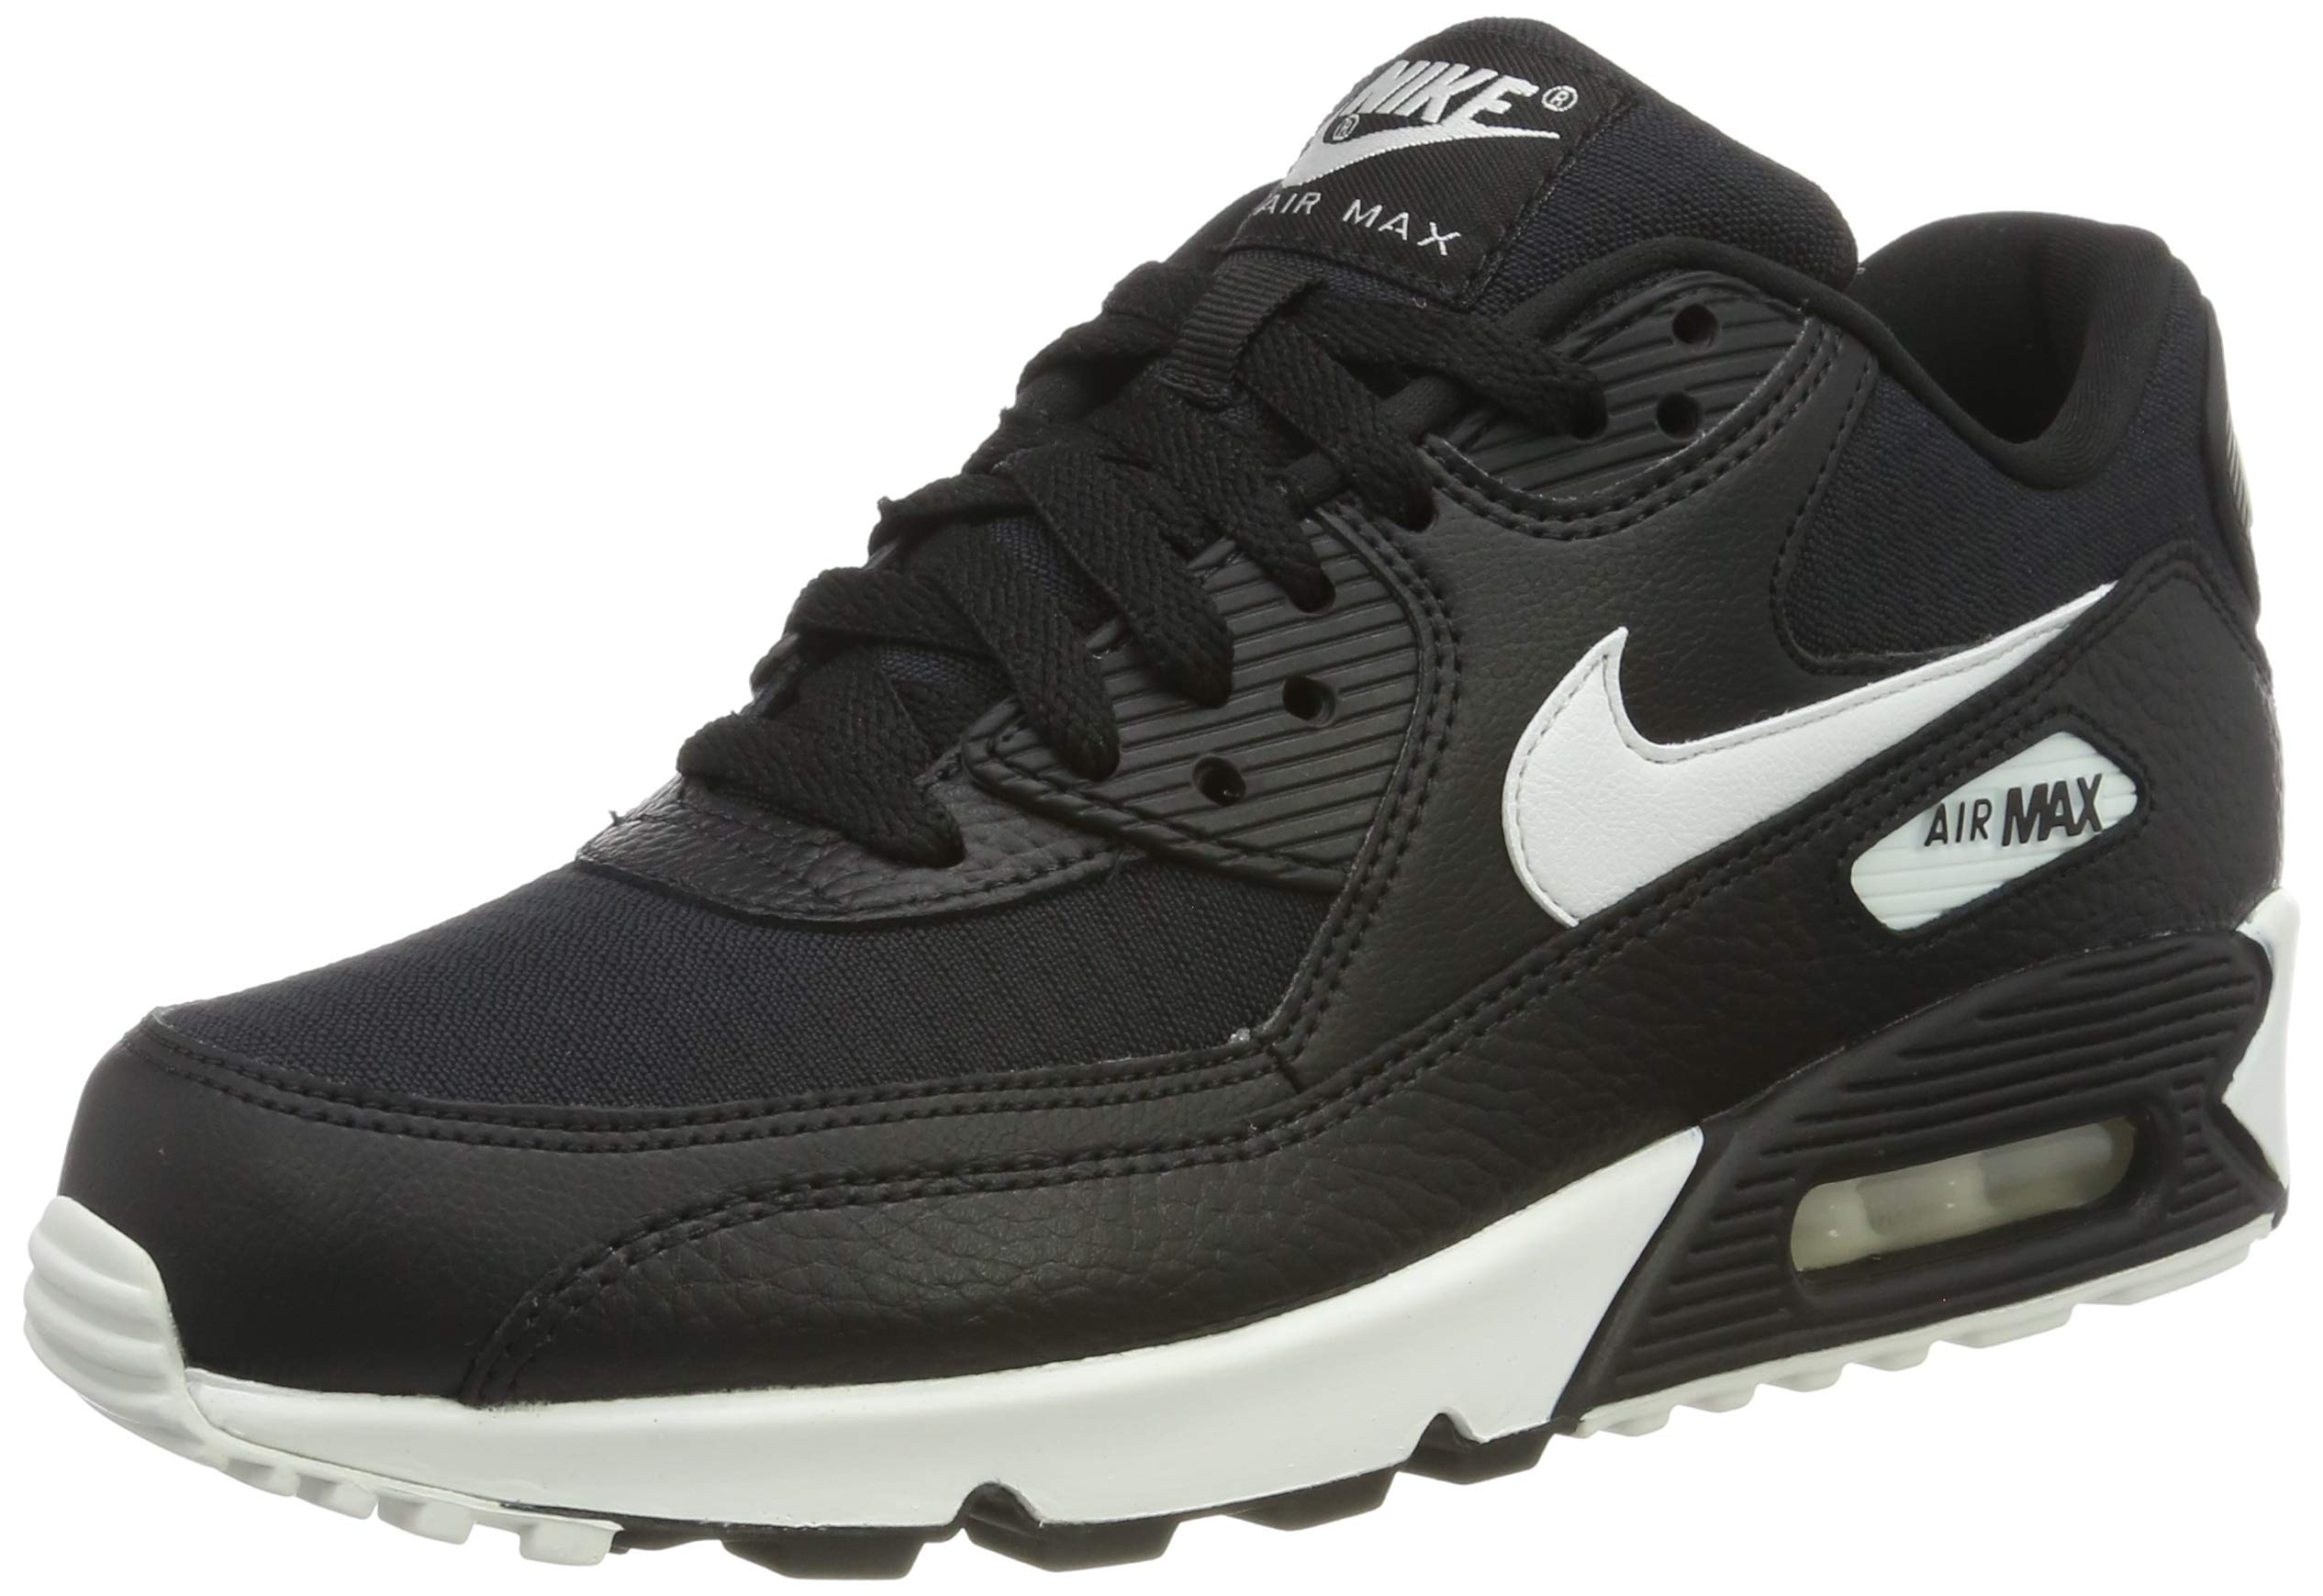 73529862c9093 Nike Women s WMNS Air Max 90 Running Shoes Summit White Black 060